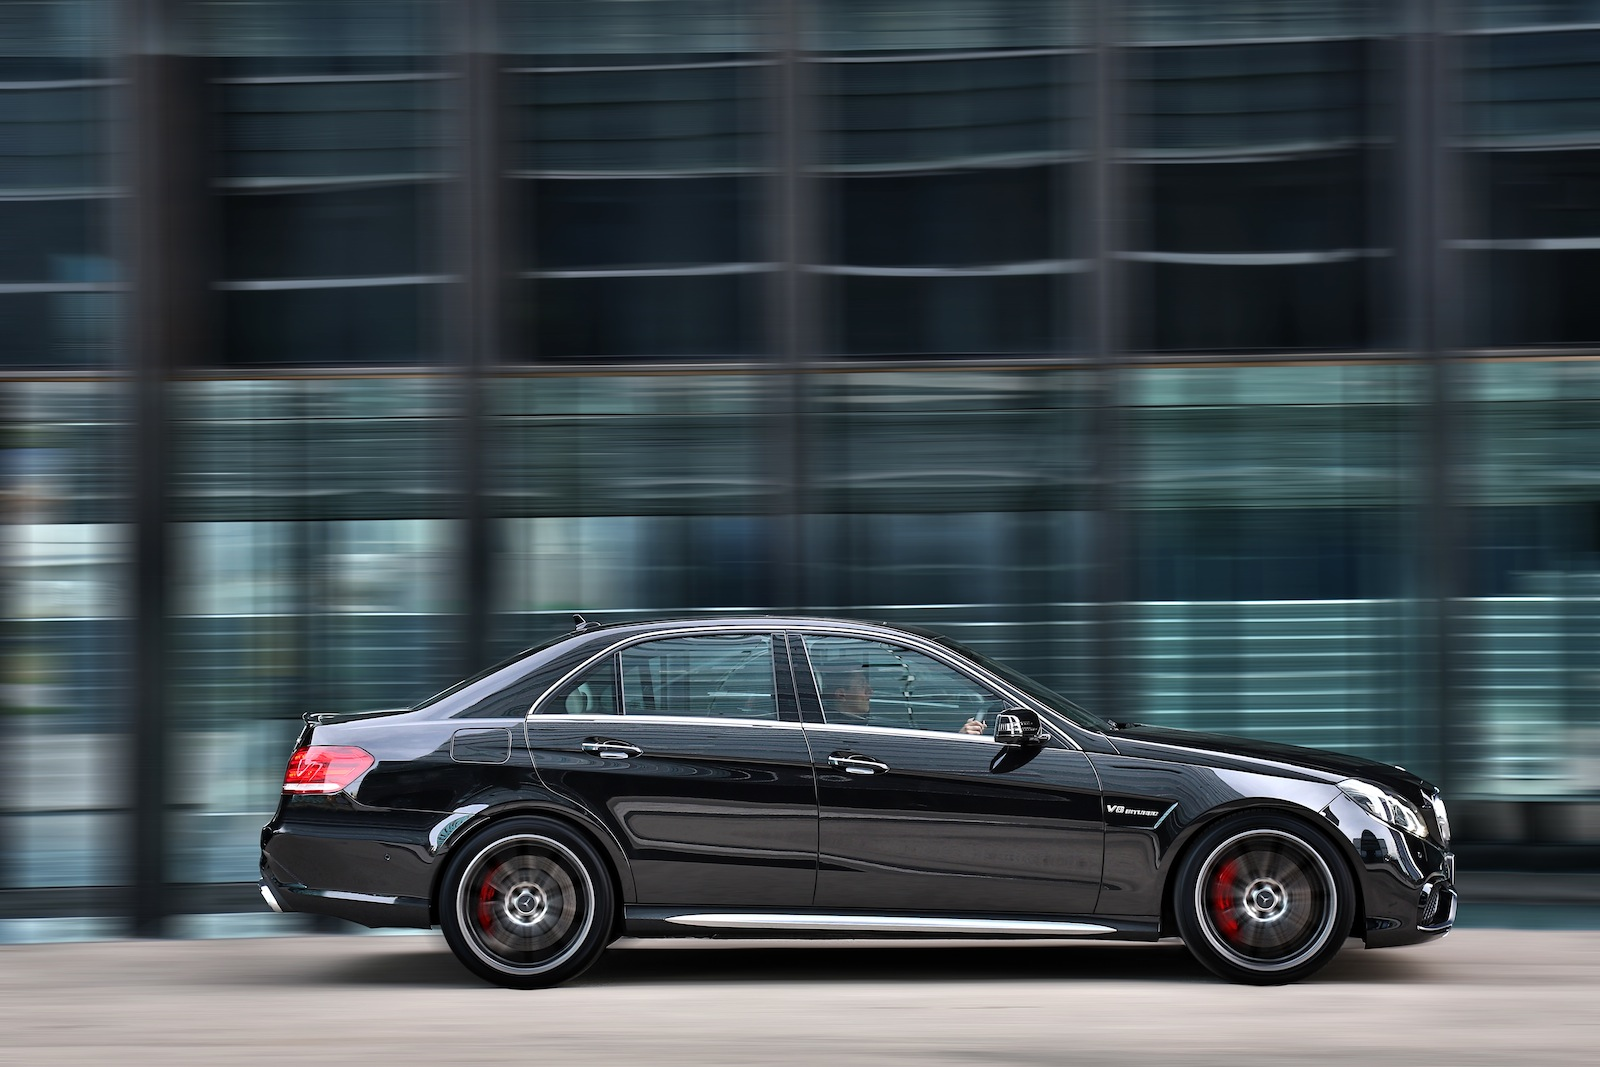 Luxury Sports Cars >> 2013 Mercedes-Benz E63 AMG Review - photos | CarAdvice